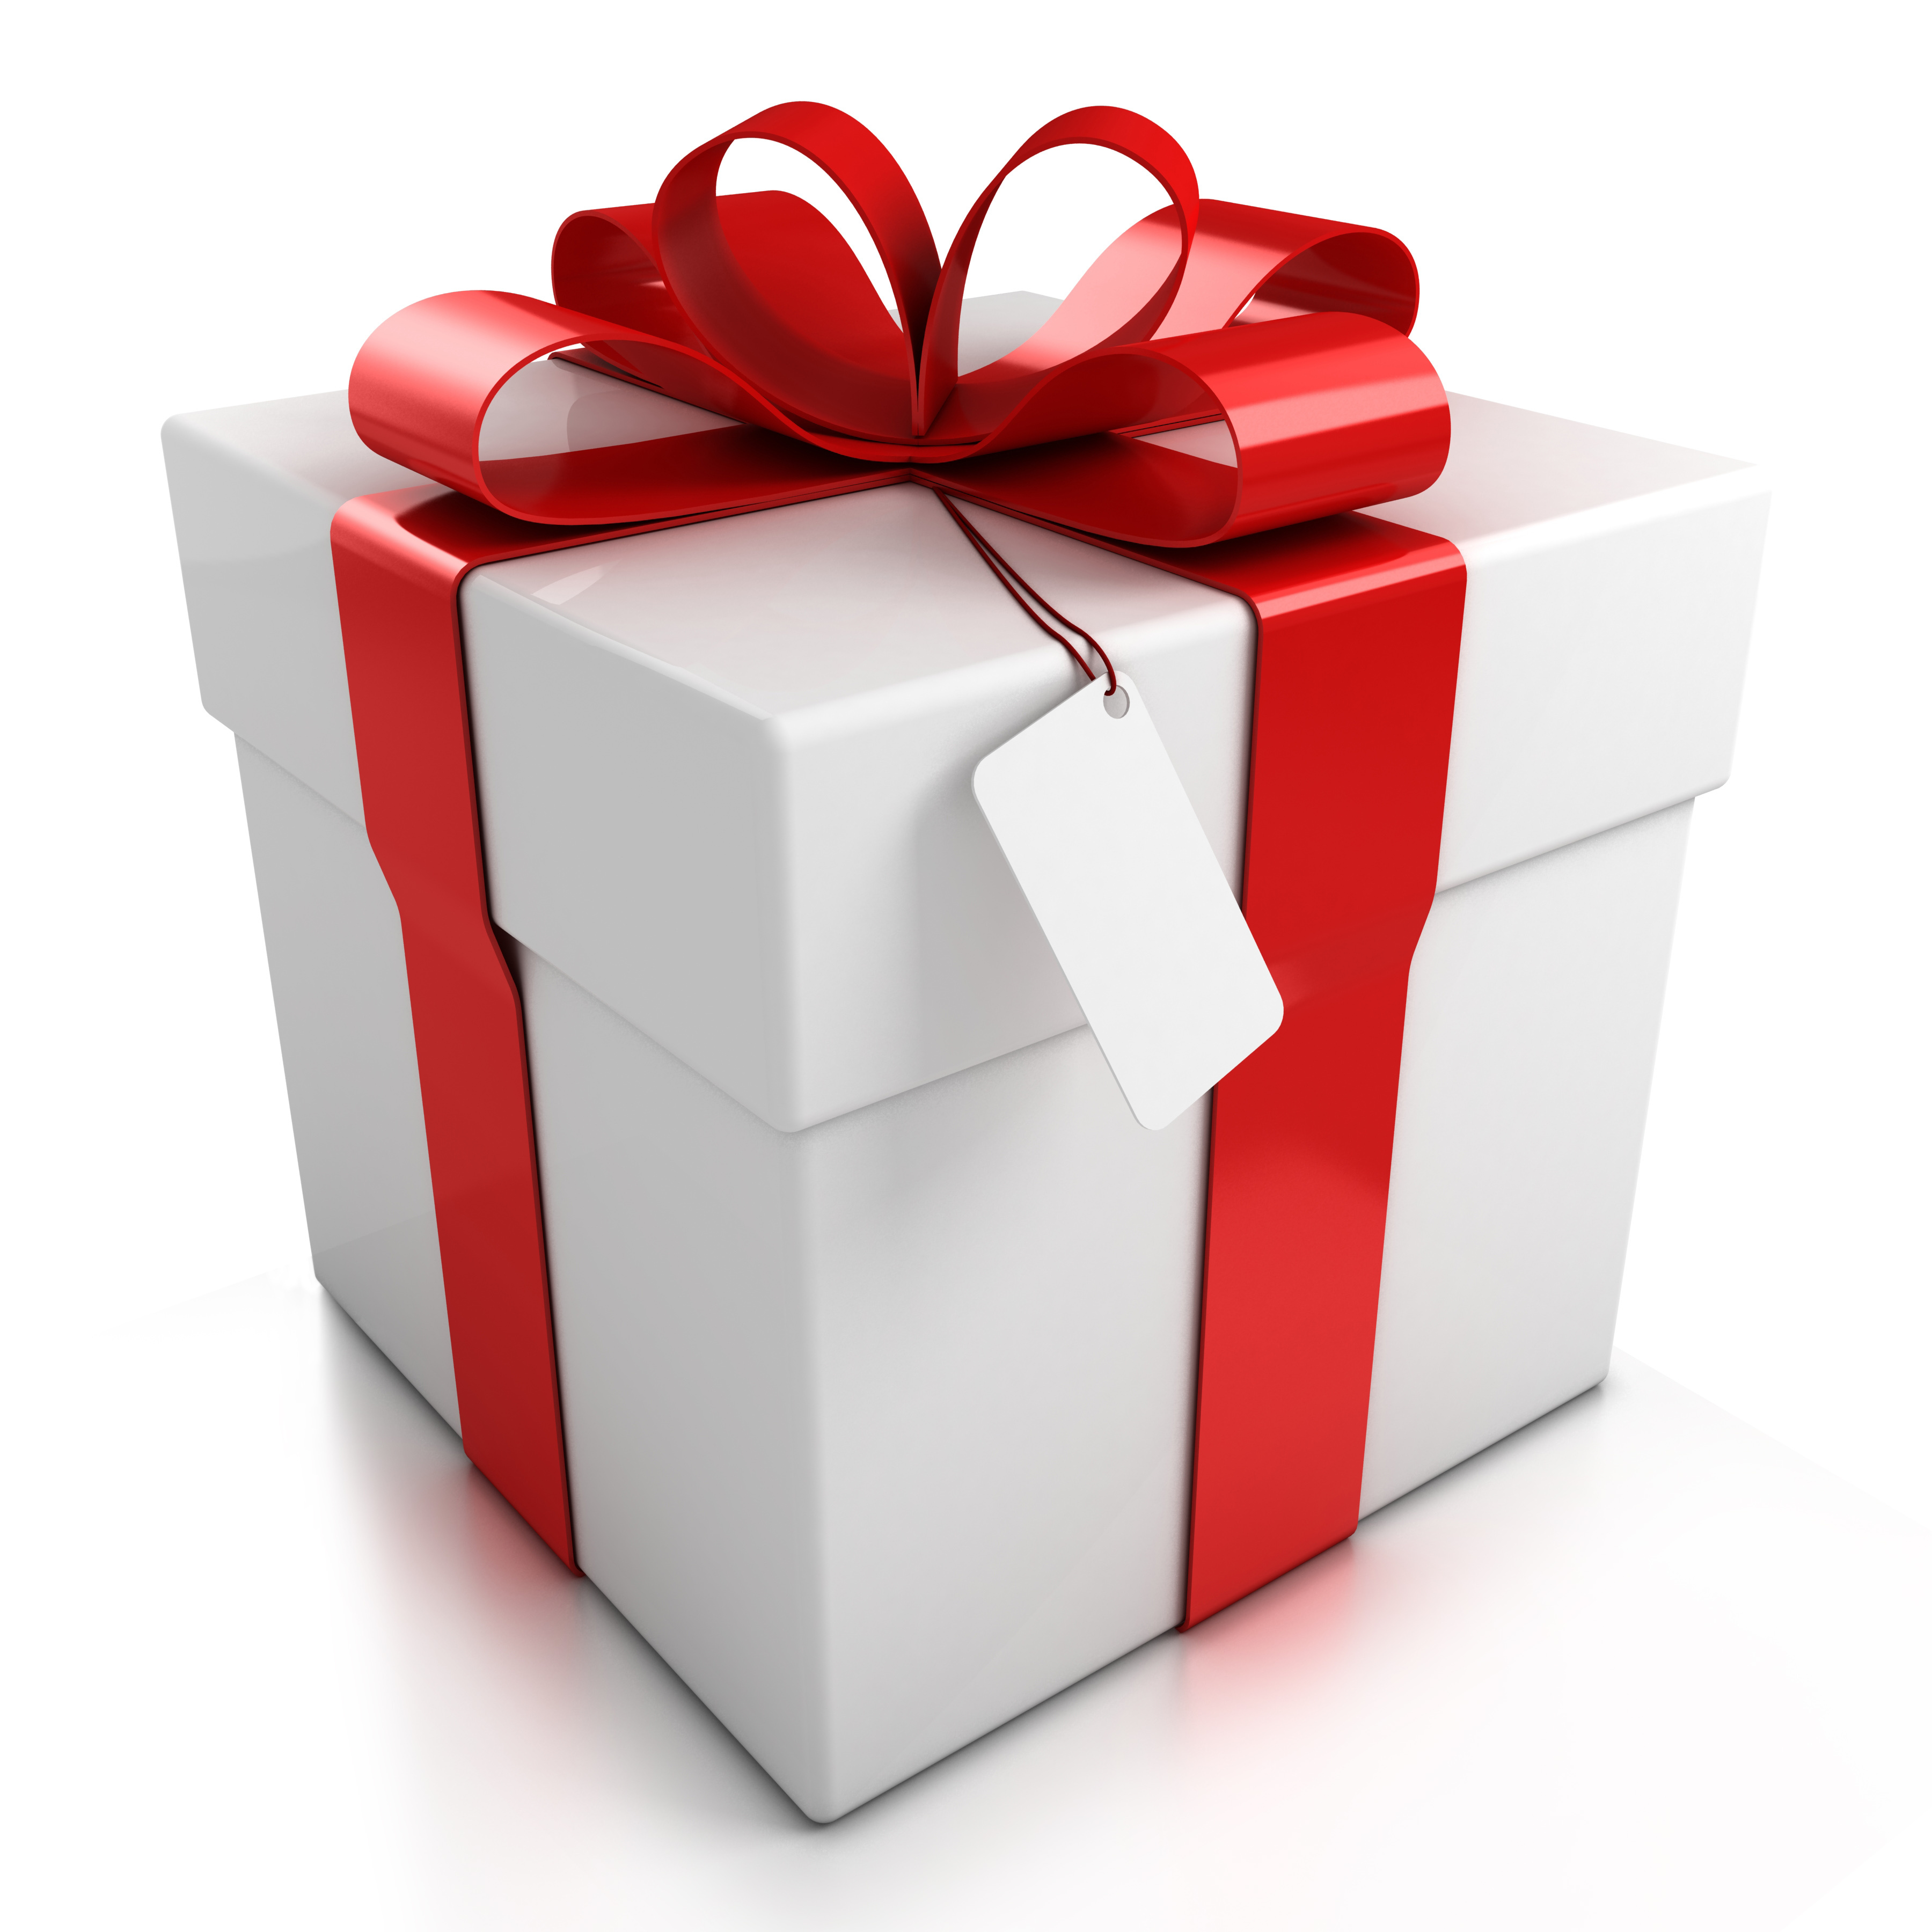 Gift in a White Box  122.87 Kb